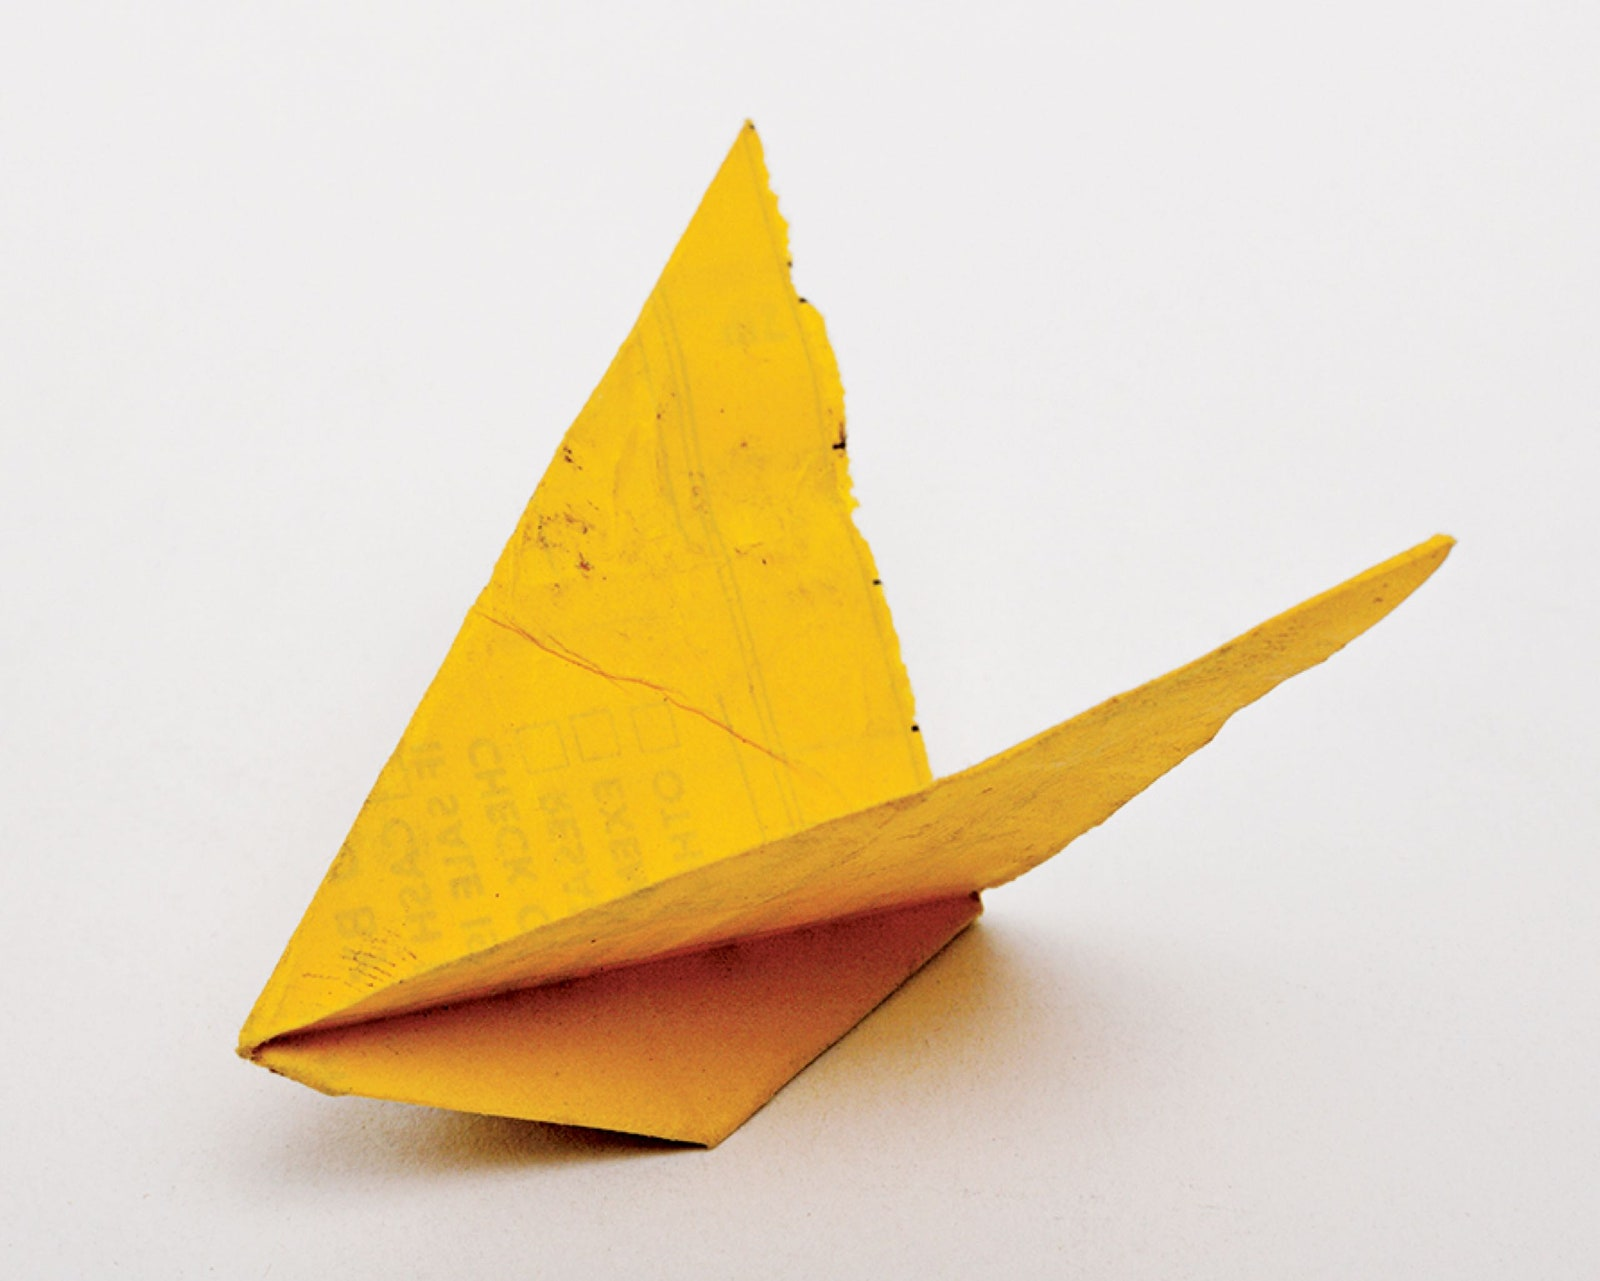 harry-everett-smith-paper-airplane-everythingwithatwist-05